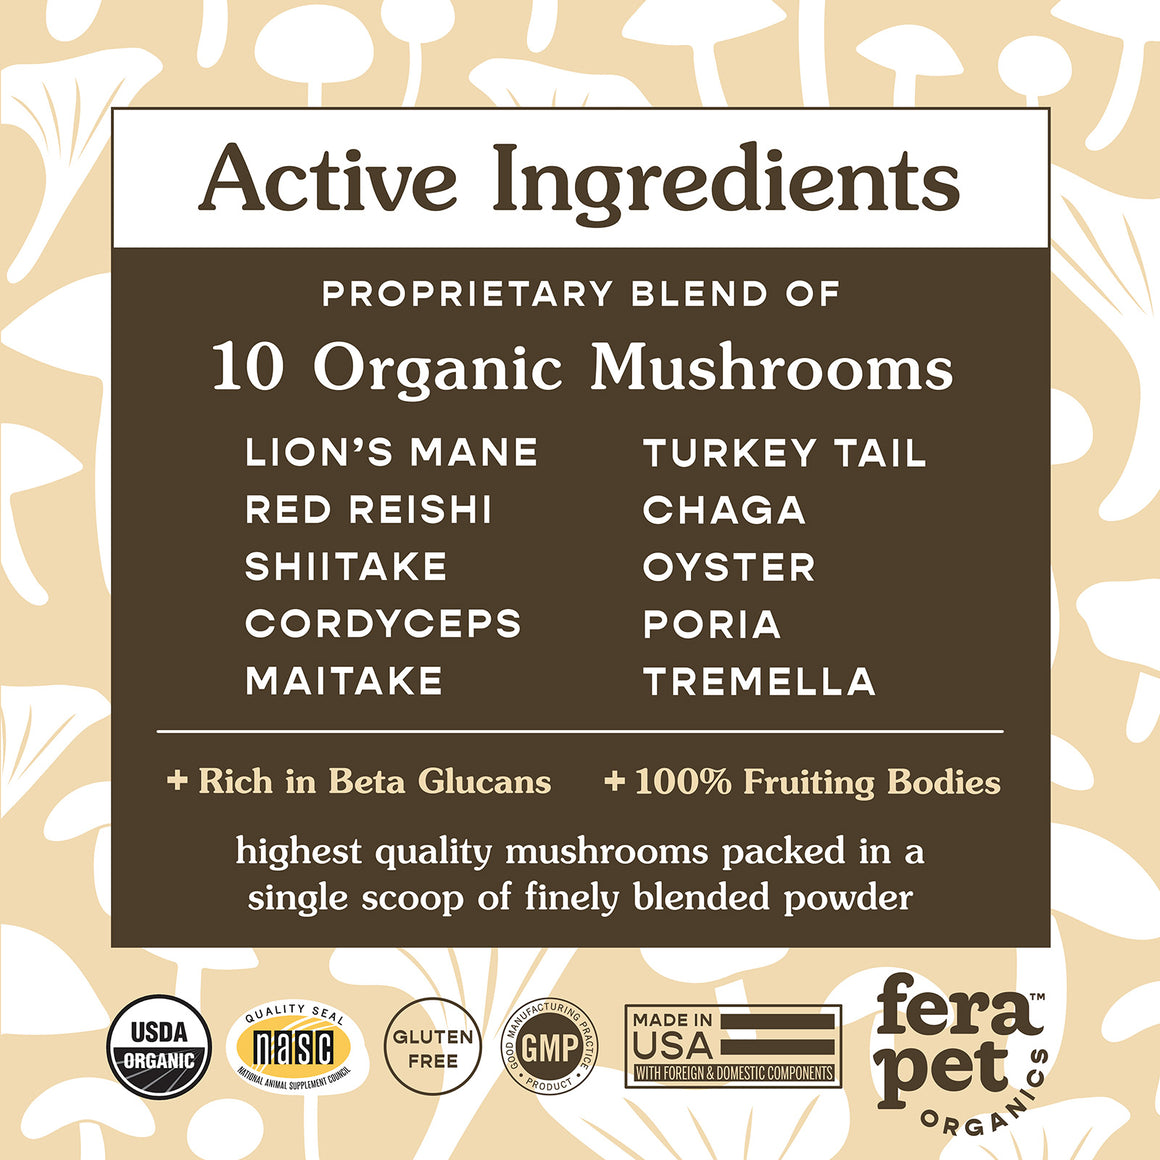 USDA Organic Mushroom Blend for Immune Support